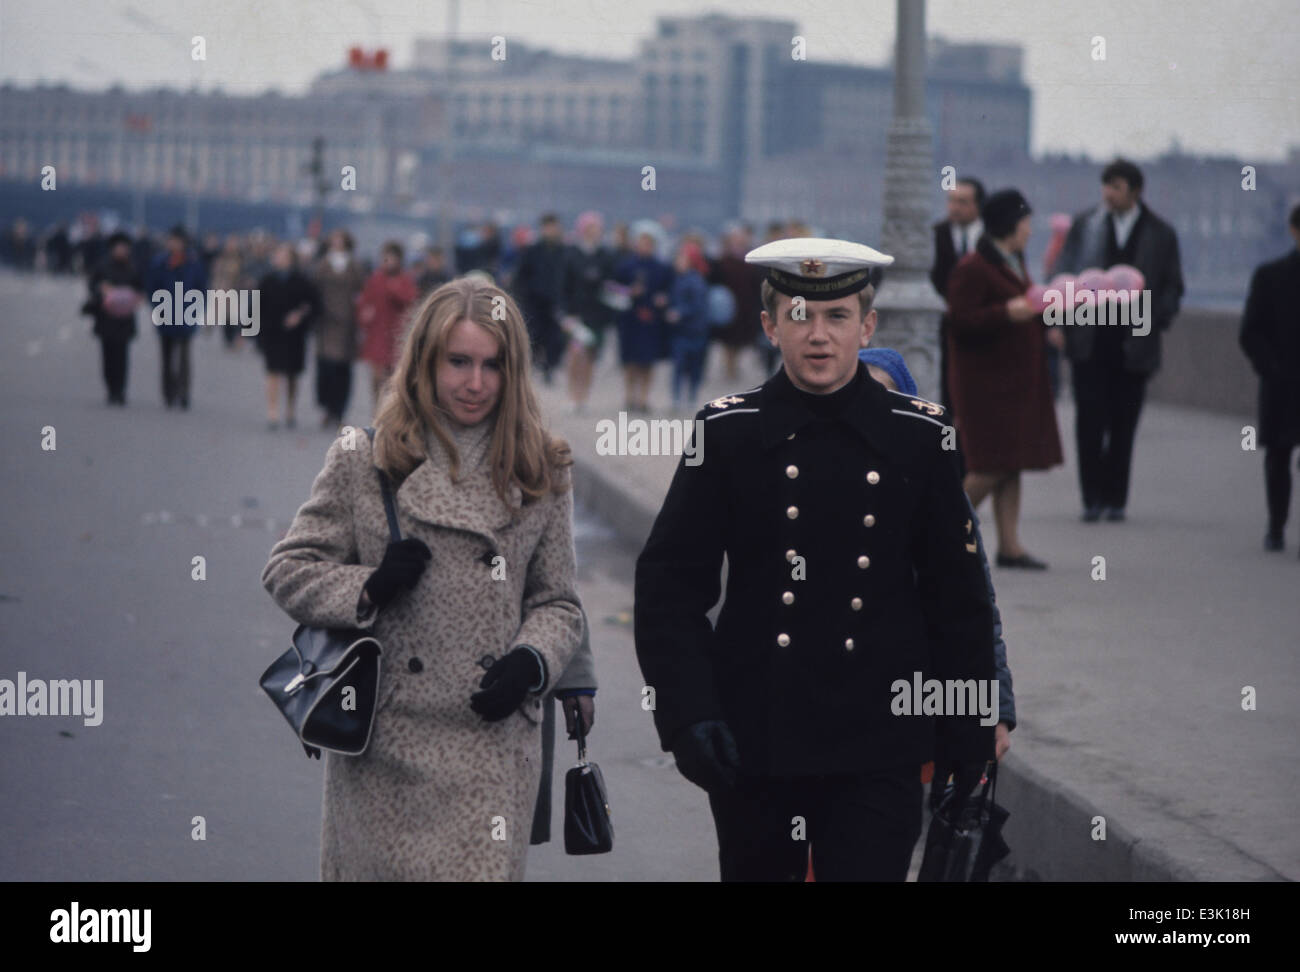 Russische Küche Nürnberg Russian Couple Stockfotos And Russian Couple Bilder Alamy